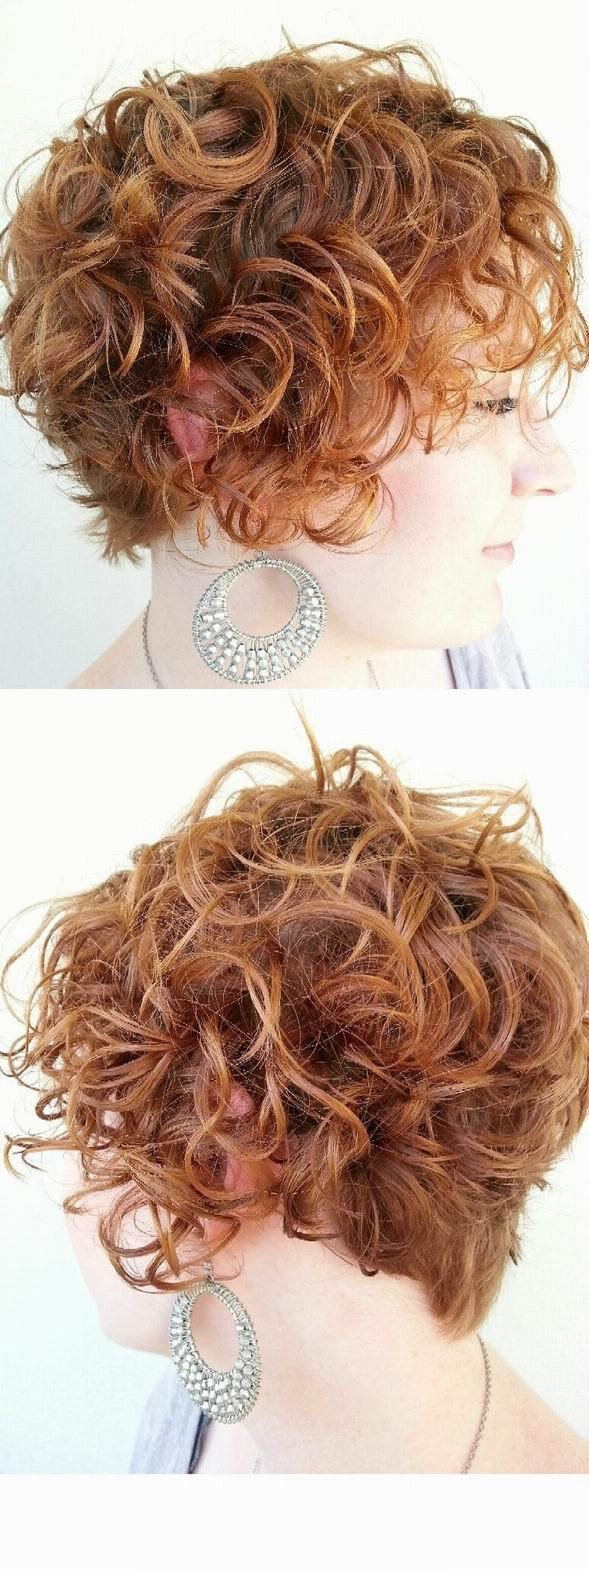 The Best 32 Easy Hairstyles For Curly Hair For Short Long Pictures